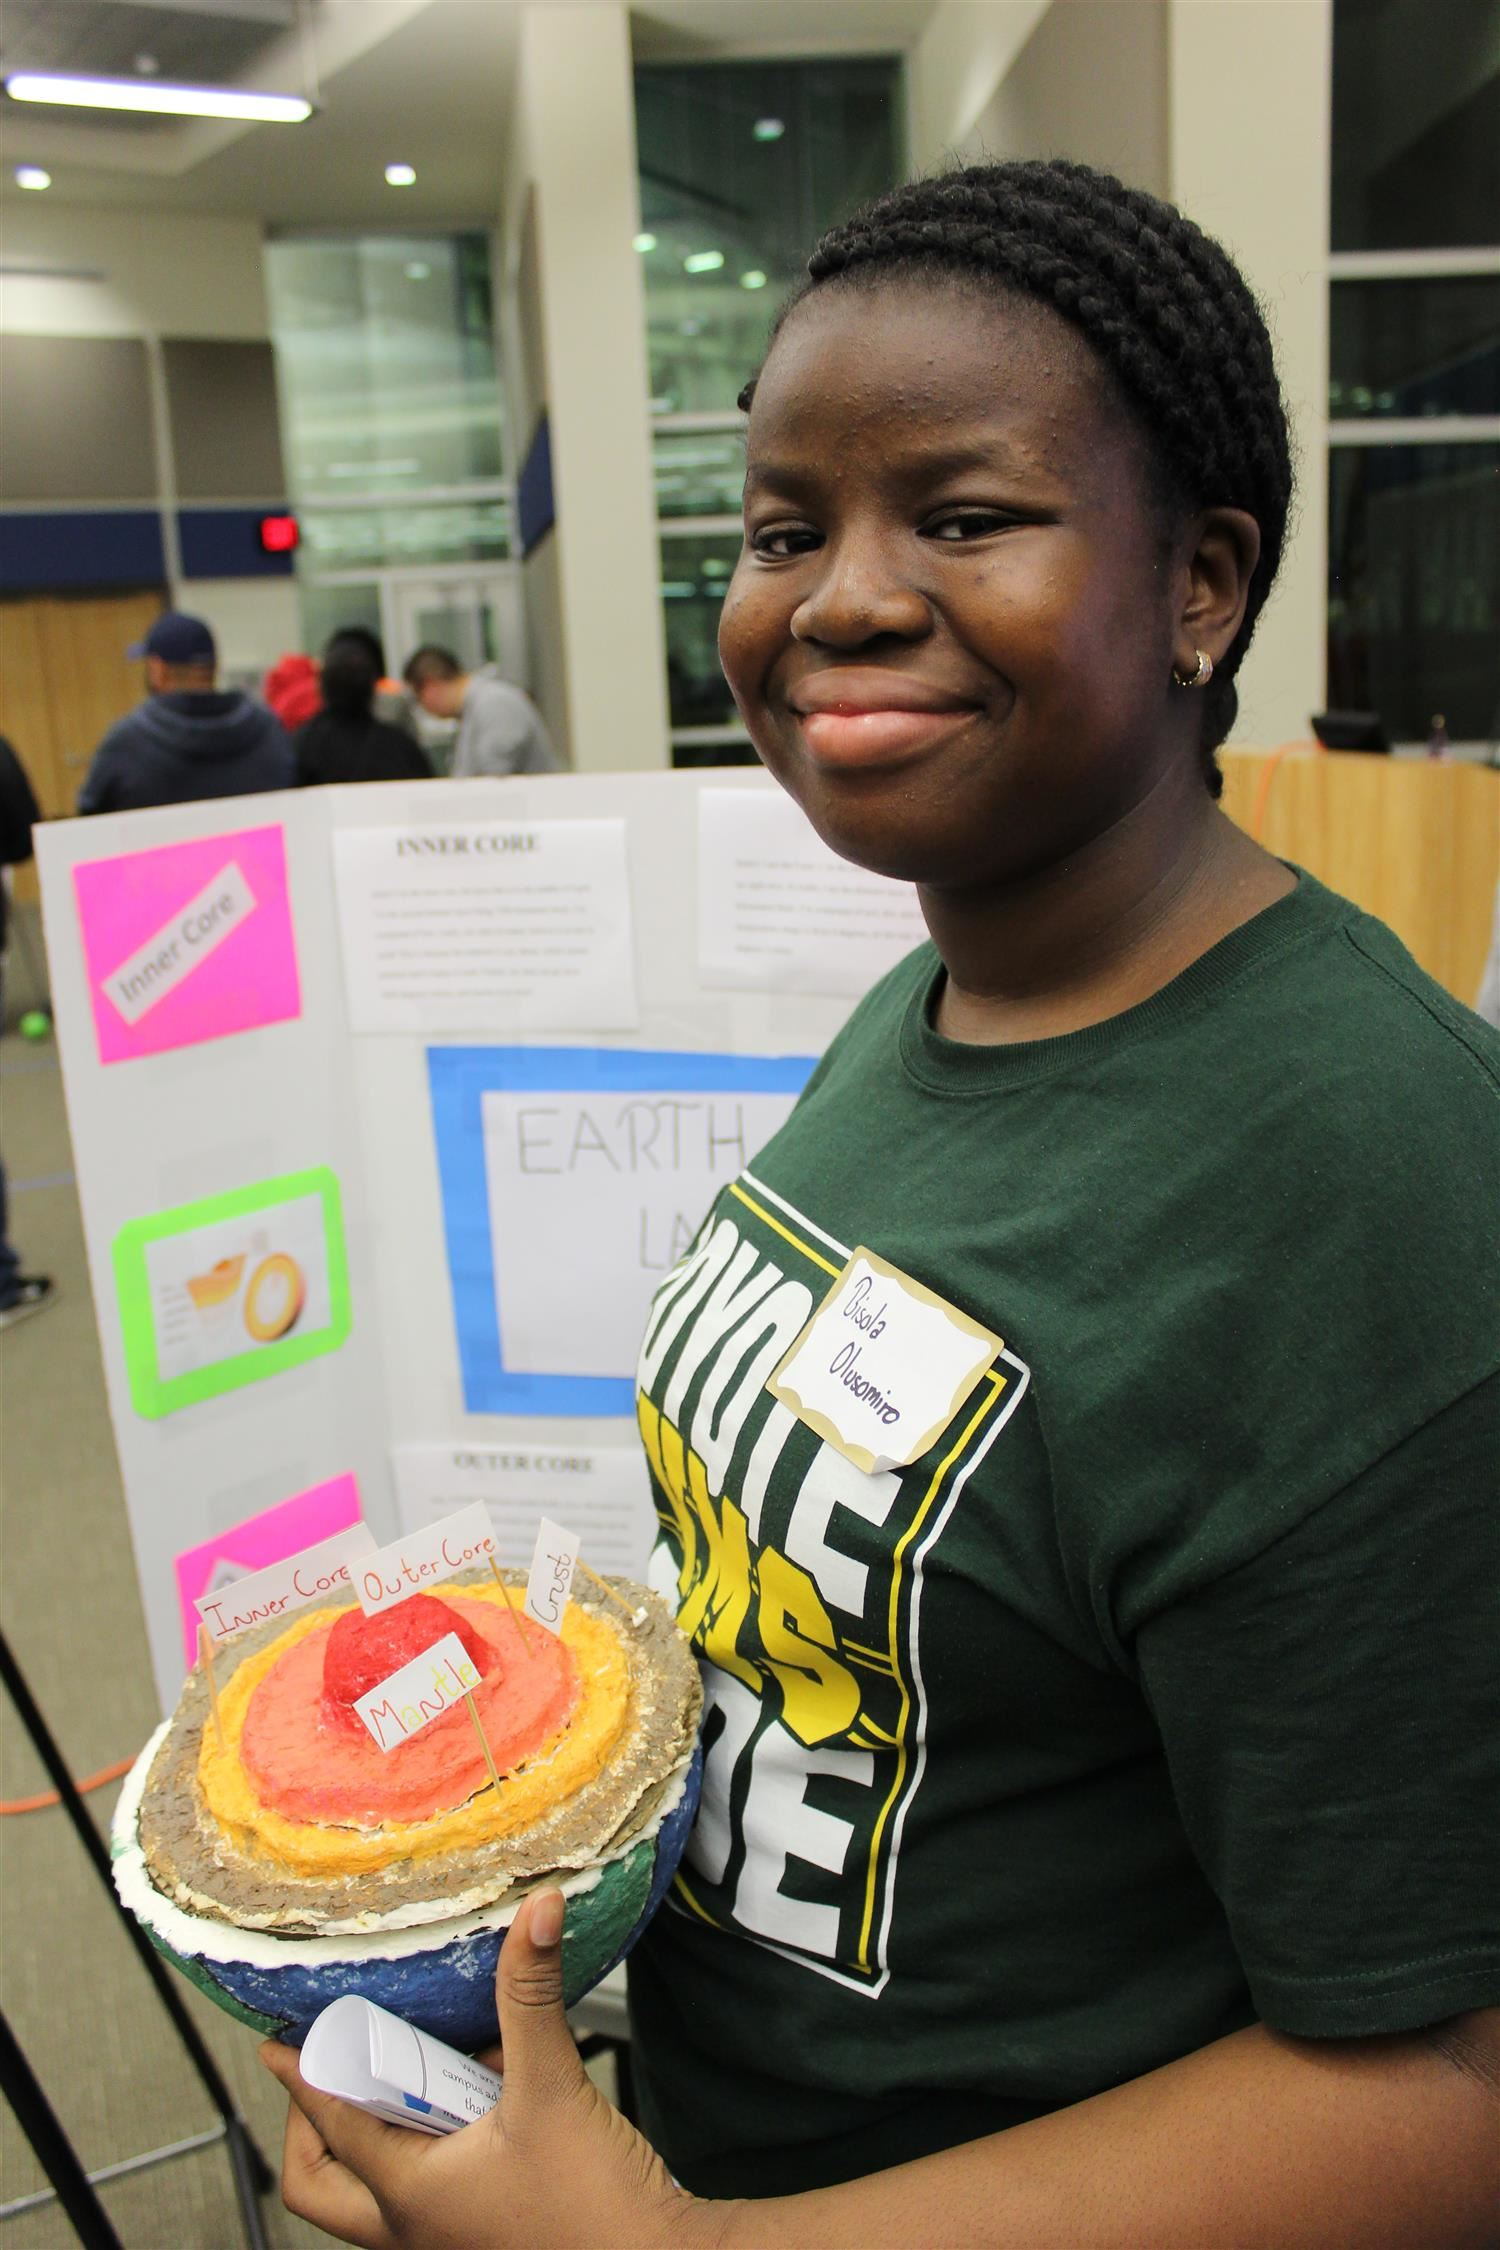 Student at STEM Showcase